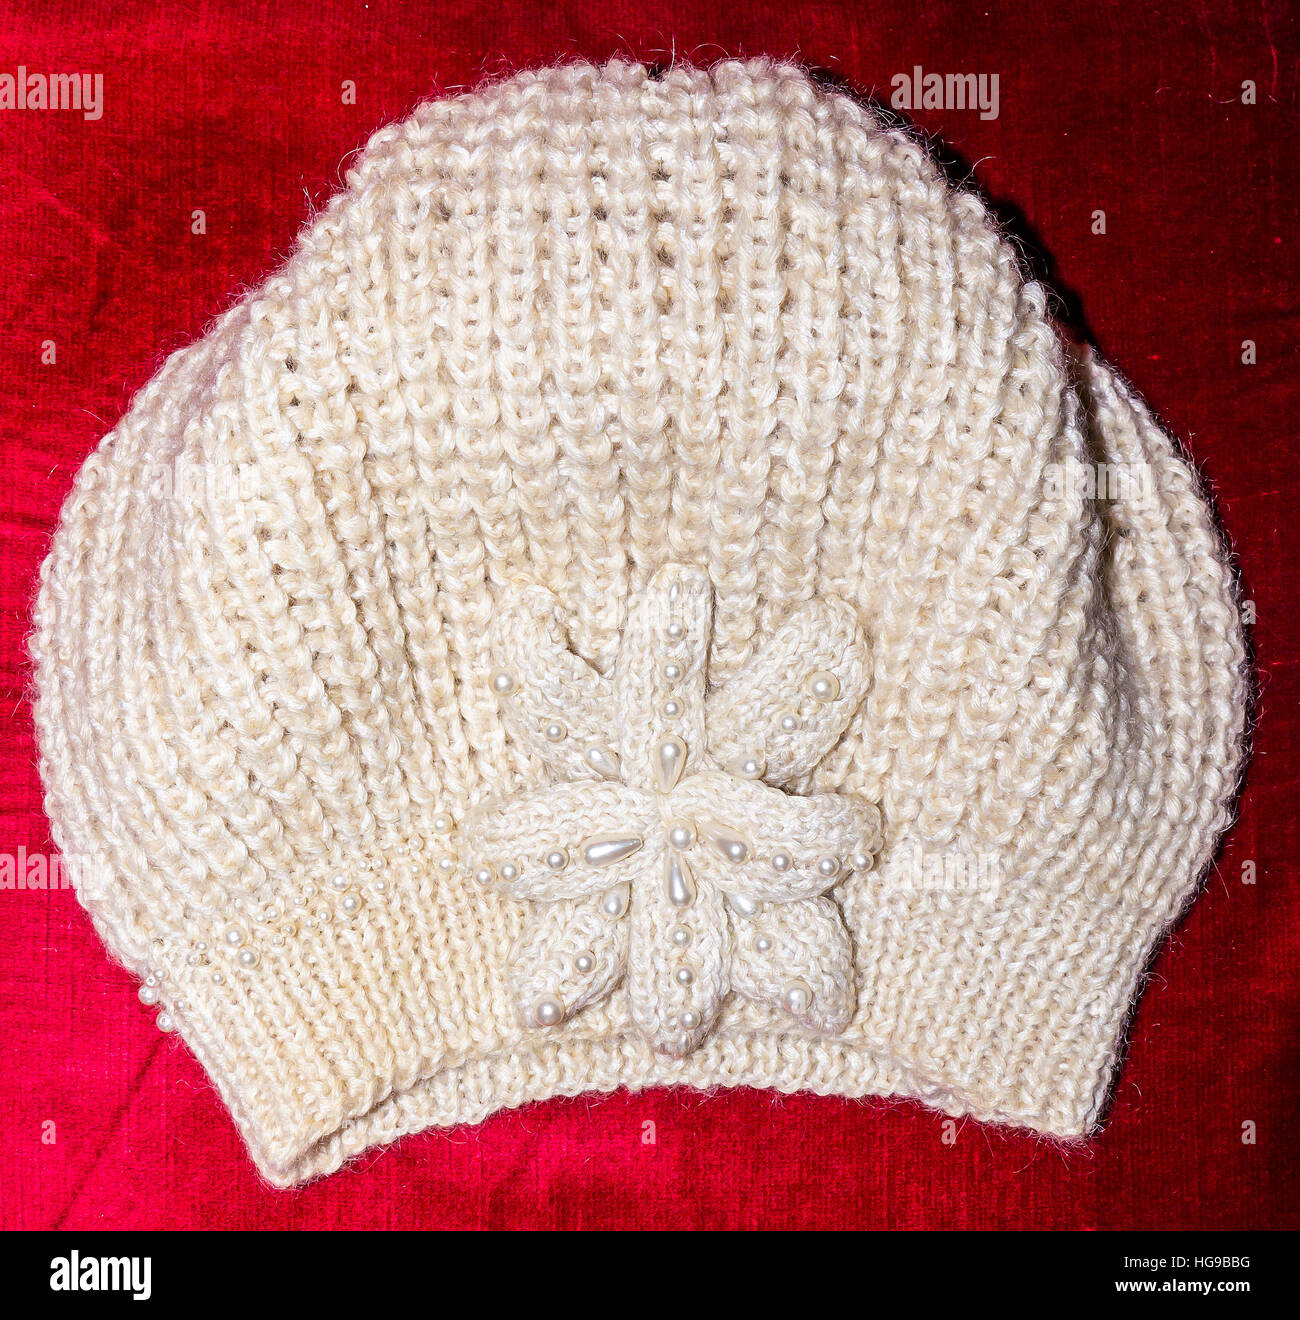 94aab3c5e Knitting Patterns Stock Photos   Knitting Patterns Stock Images - Alamy